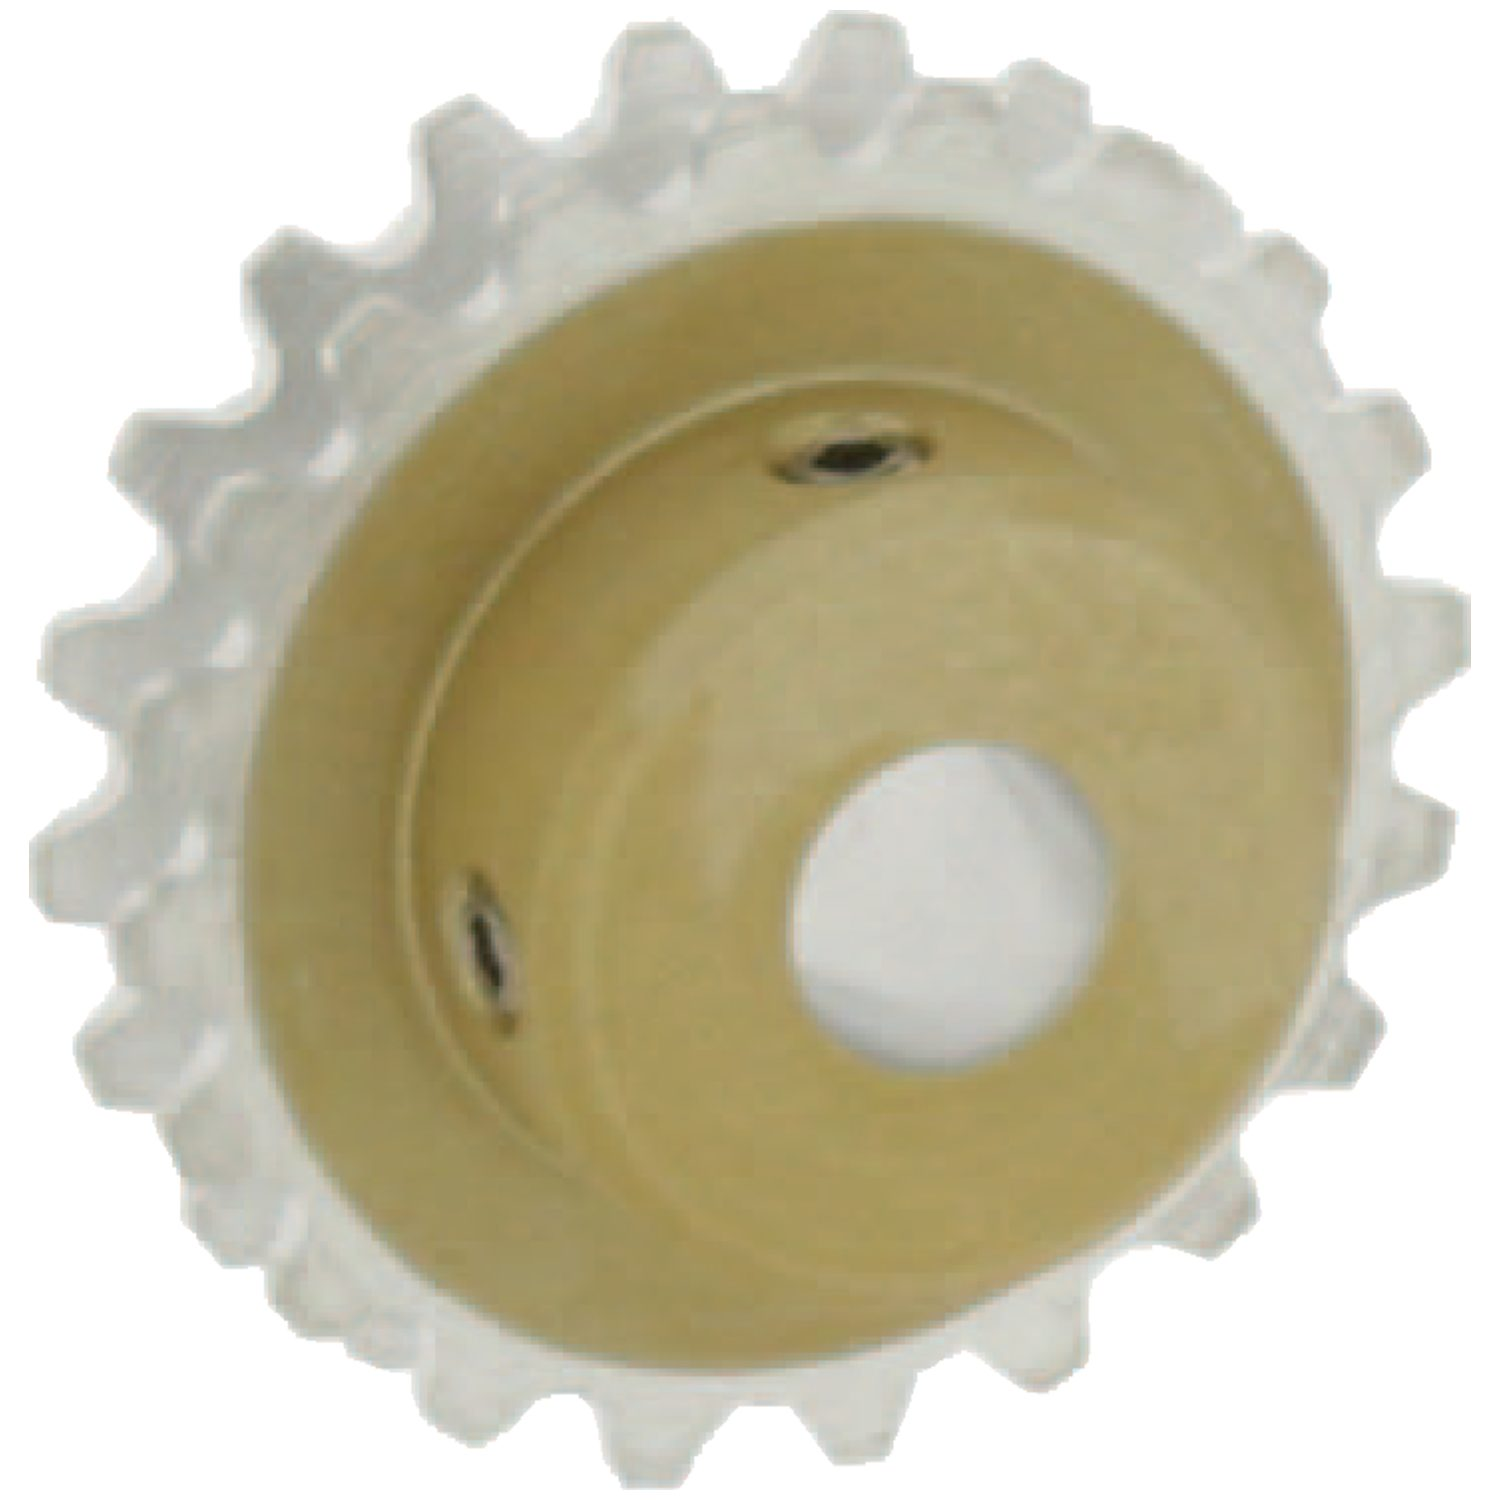 R1051 - 3-D Pulleys, aluminium, pin hub